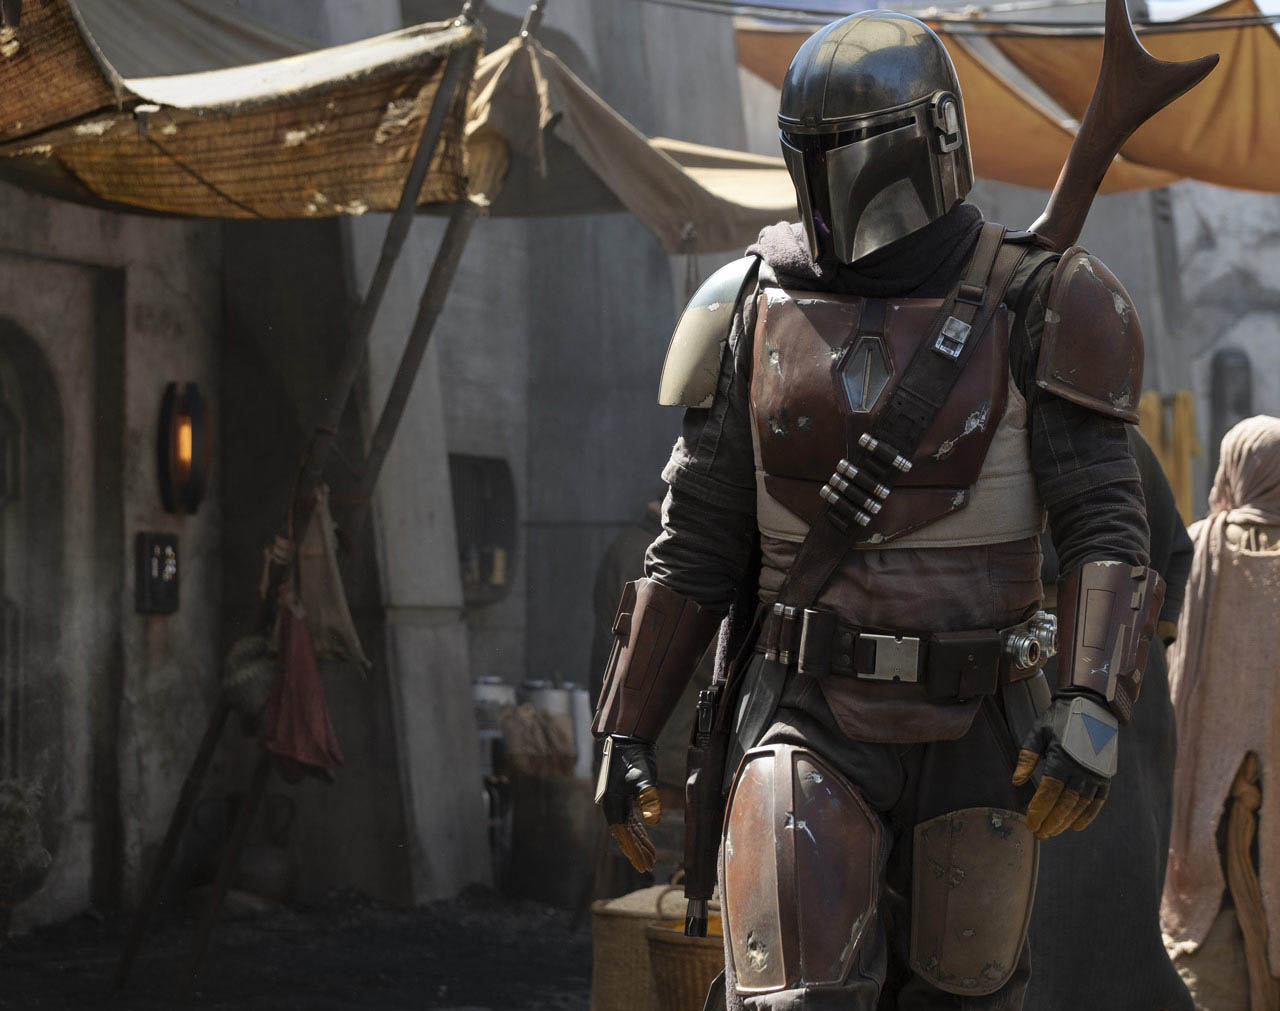 star wars the mandalorian - official images - 01